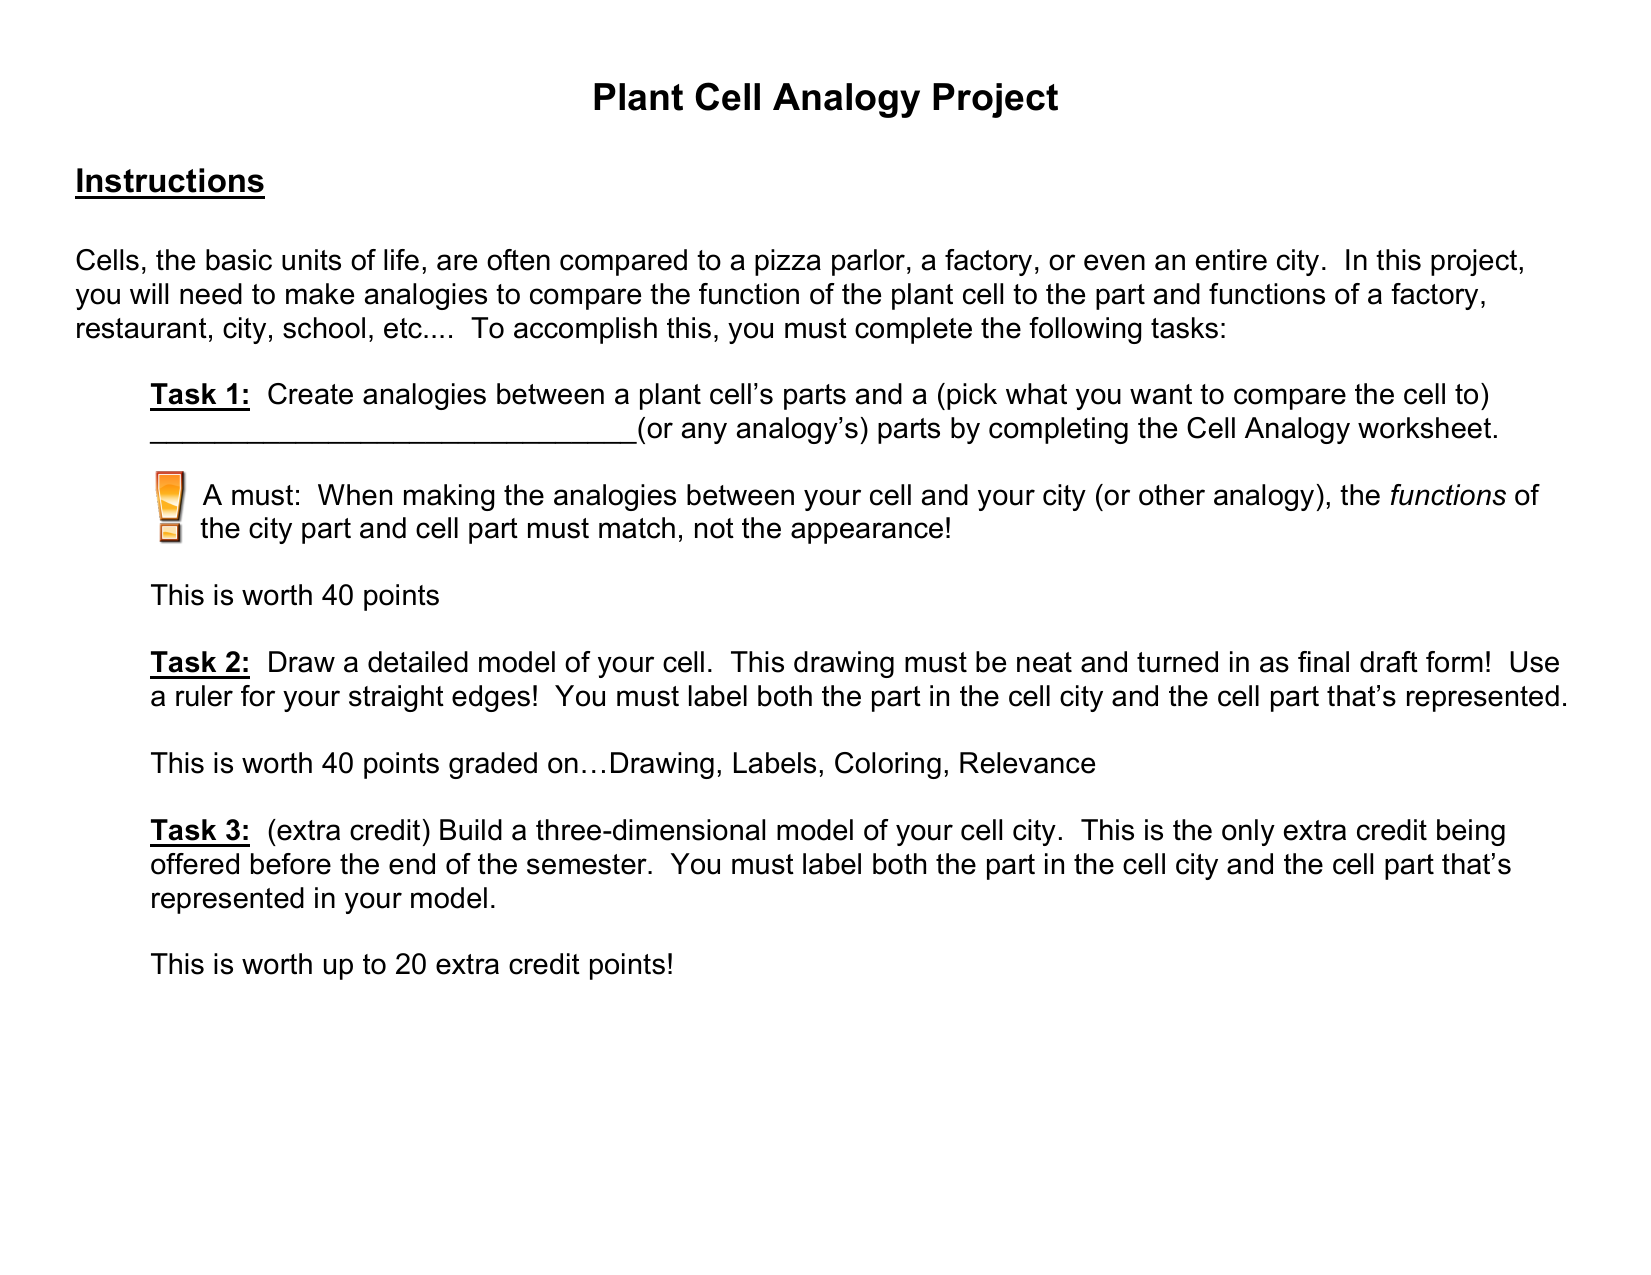 Plant Cell Analogy Worksheet – Cell City Analogy Worksheet